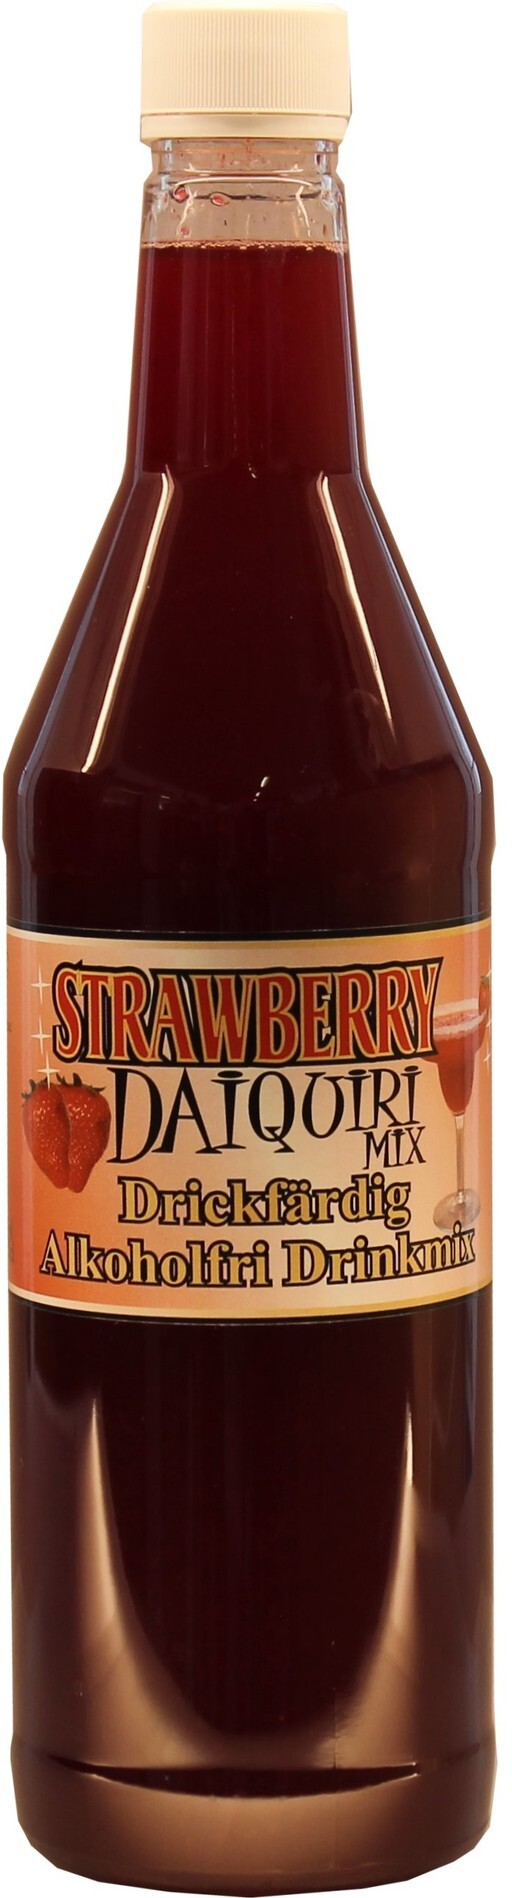 Strawberry Daiquiri 75cl